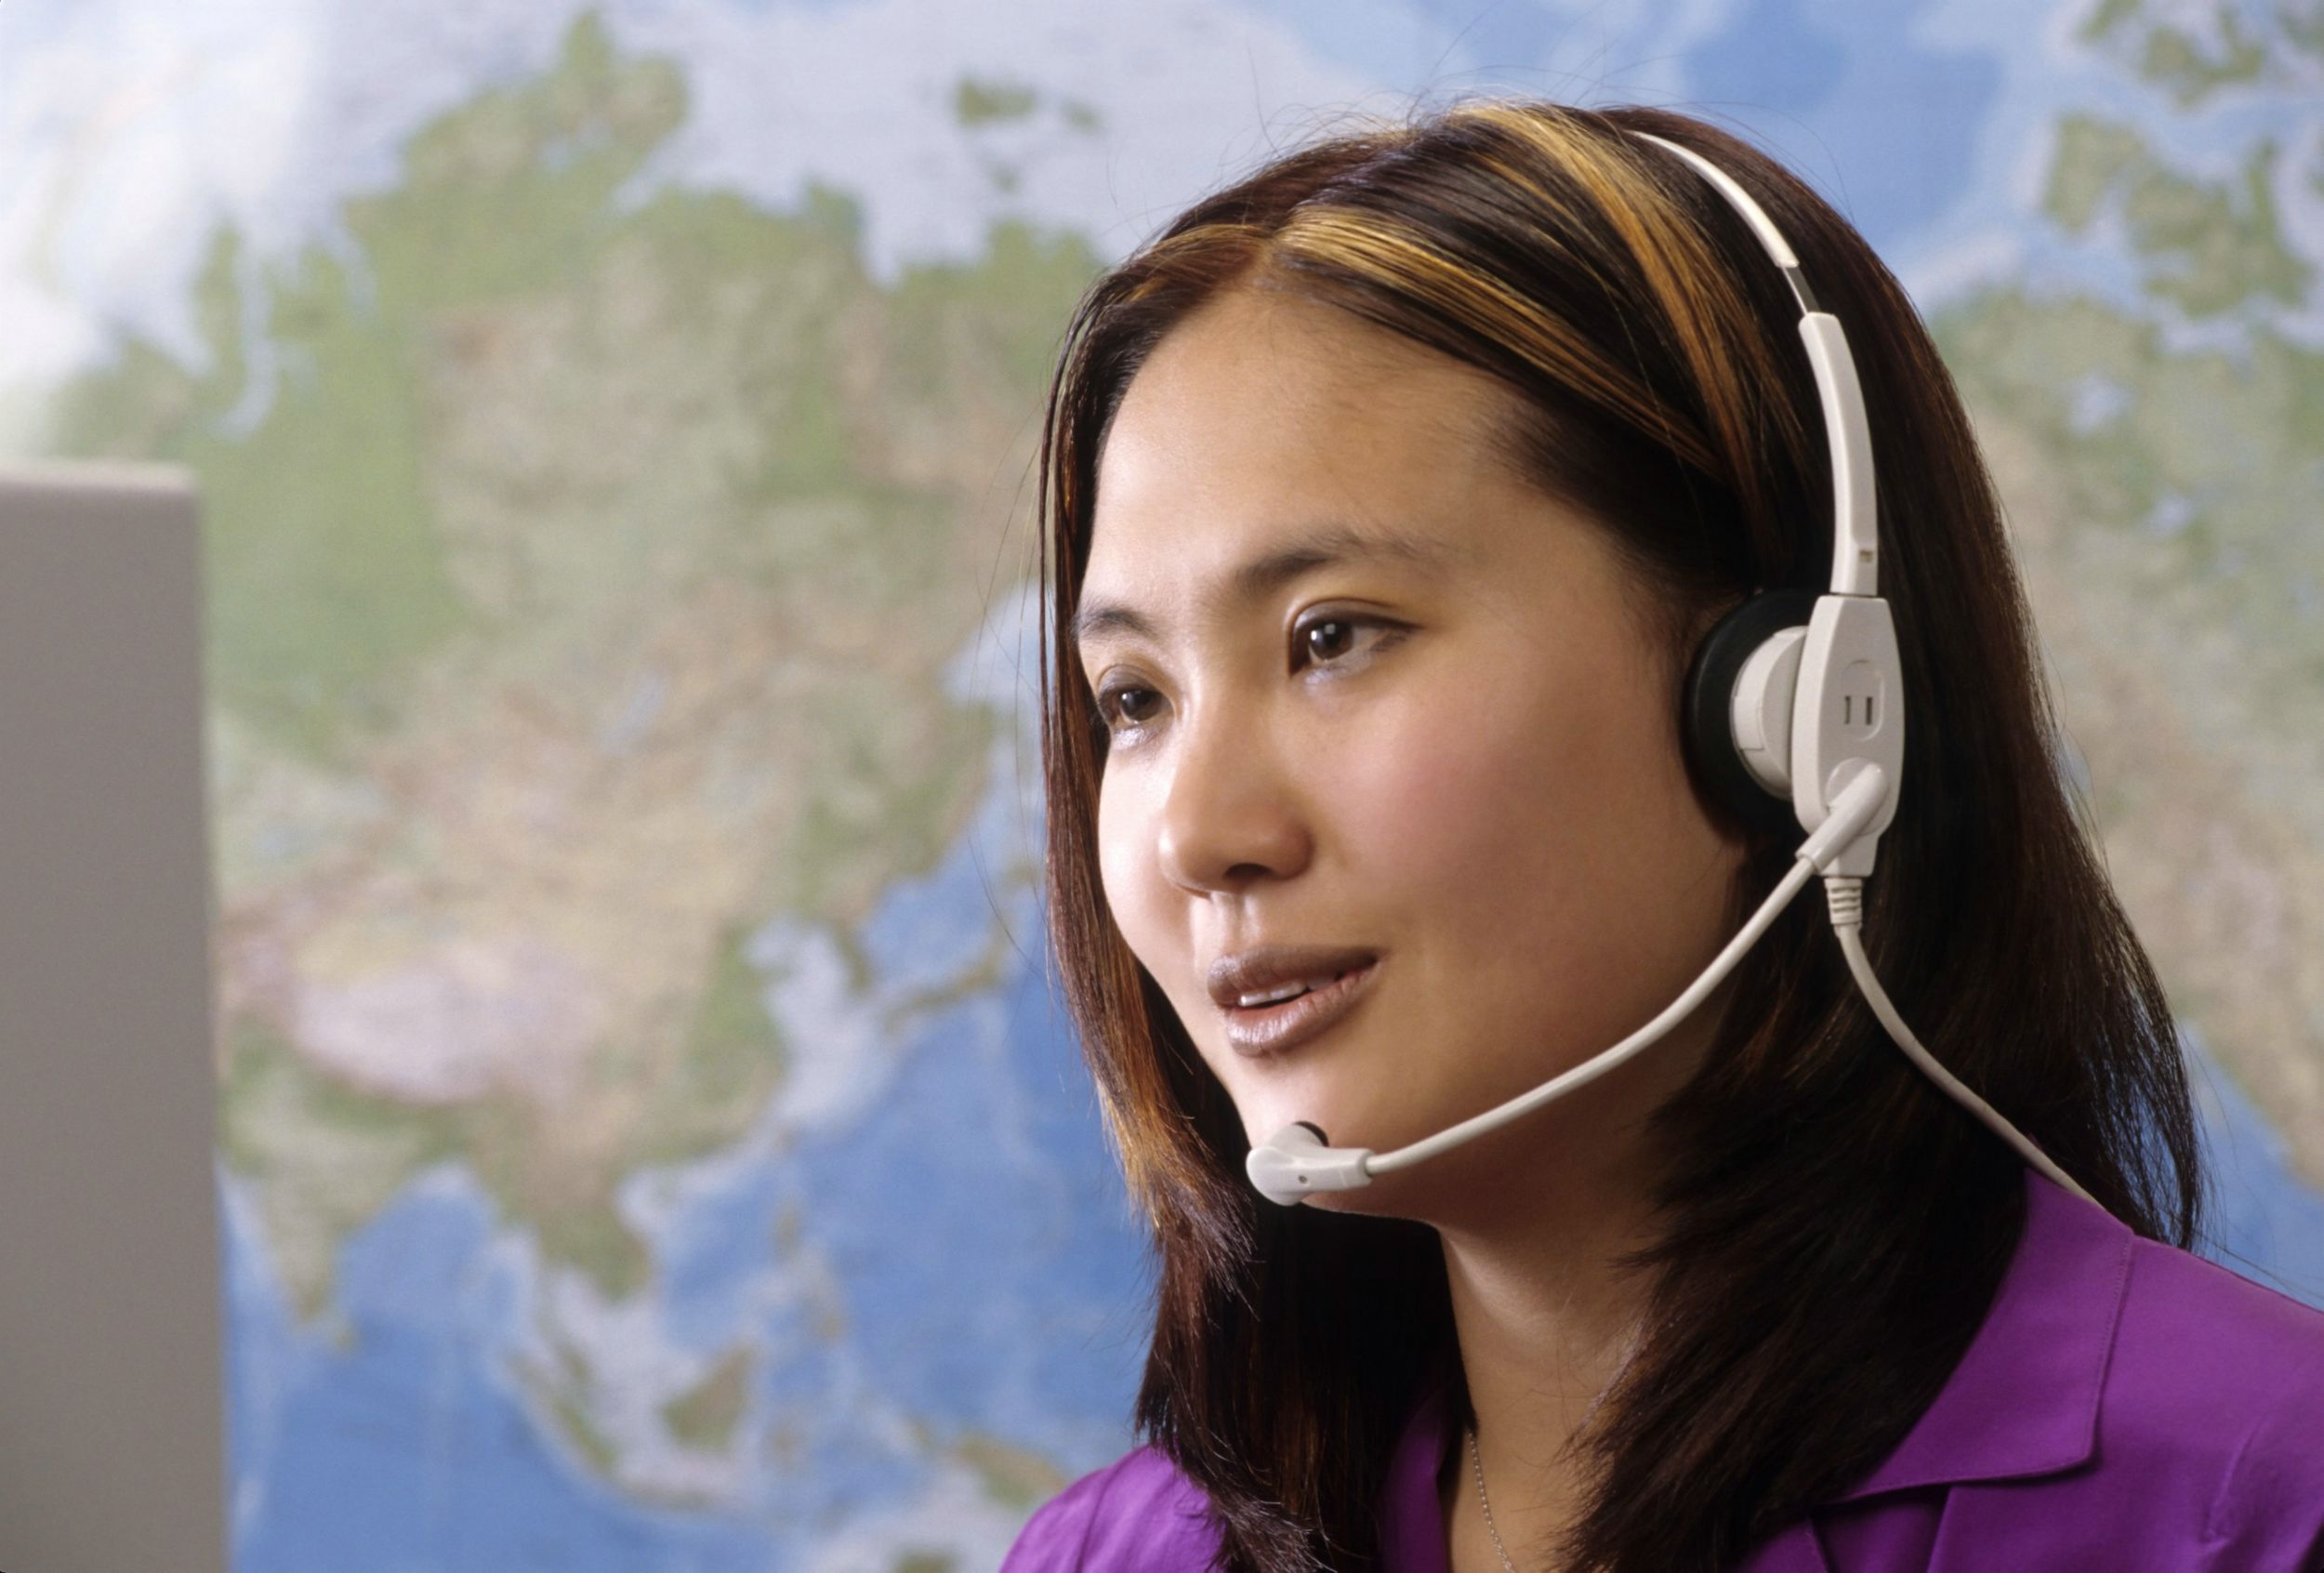 Call center efforts can open the door to a lot of calls